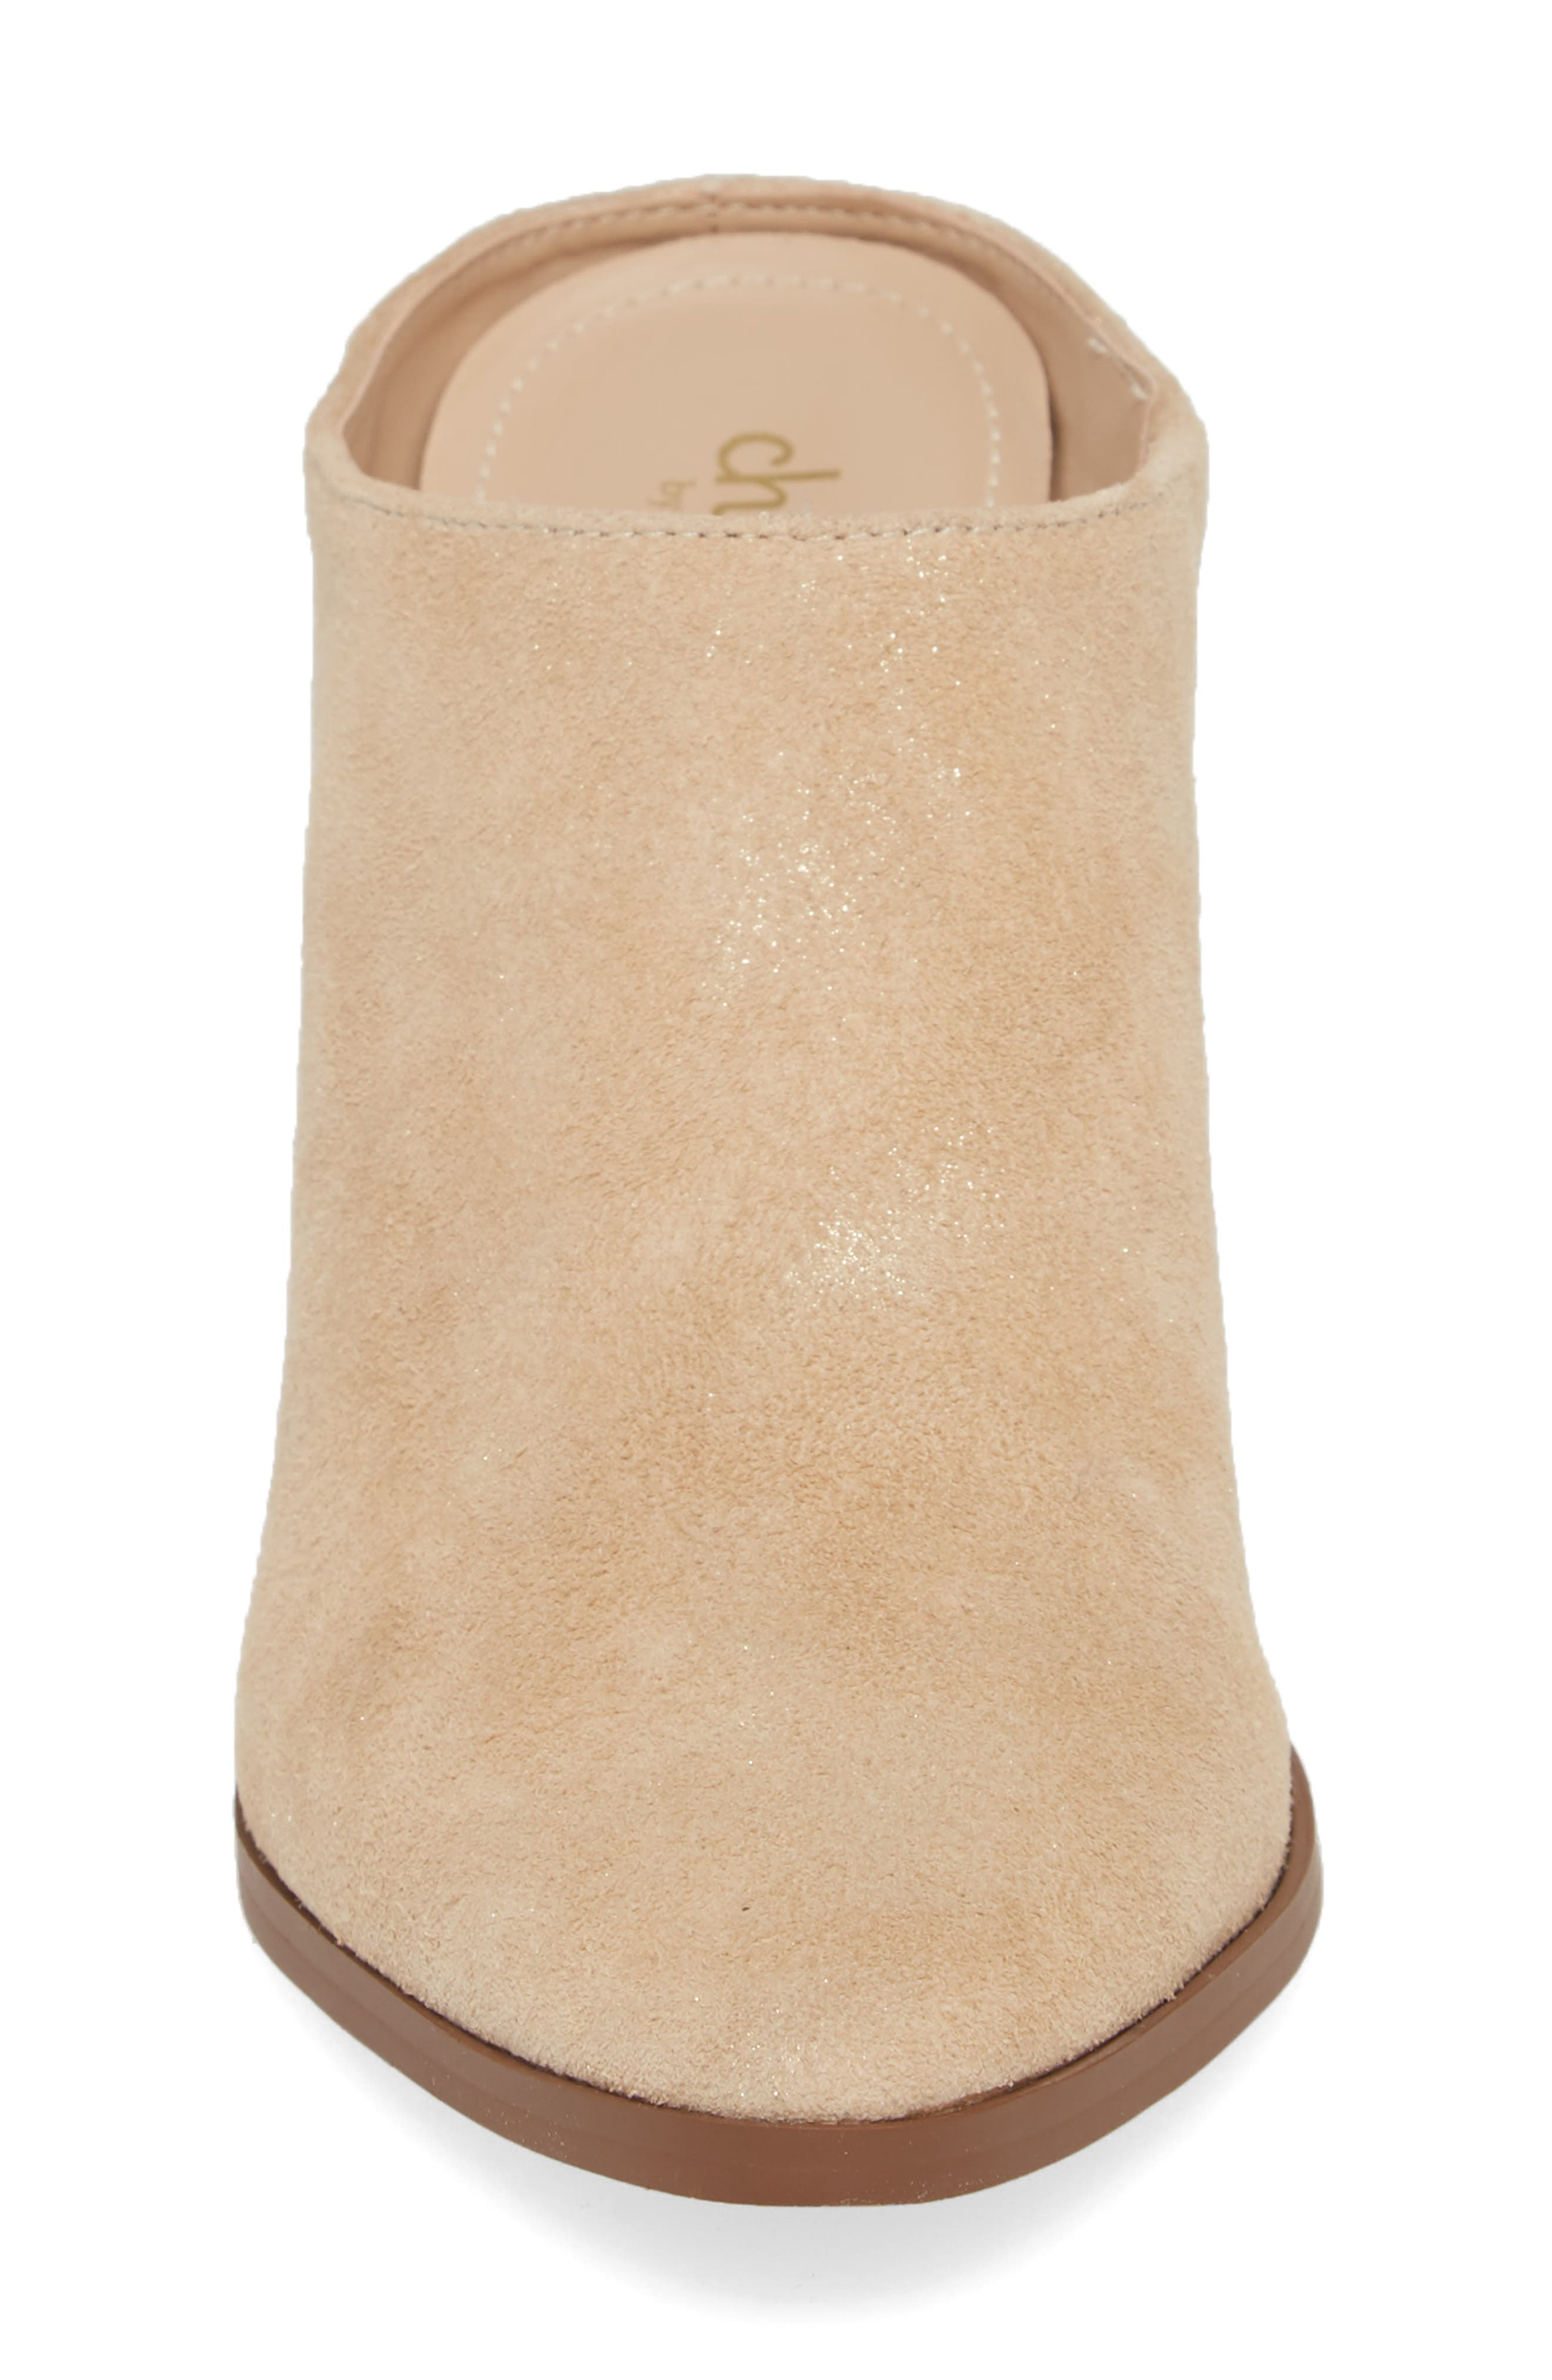 CHARLES BY CHARLES DAVID, Nico Mule, Alternate thumbnail 4, color, NUDE LIGHT GOLD SUEDE